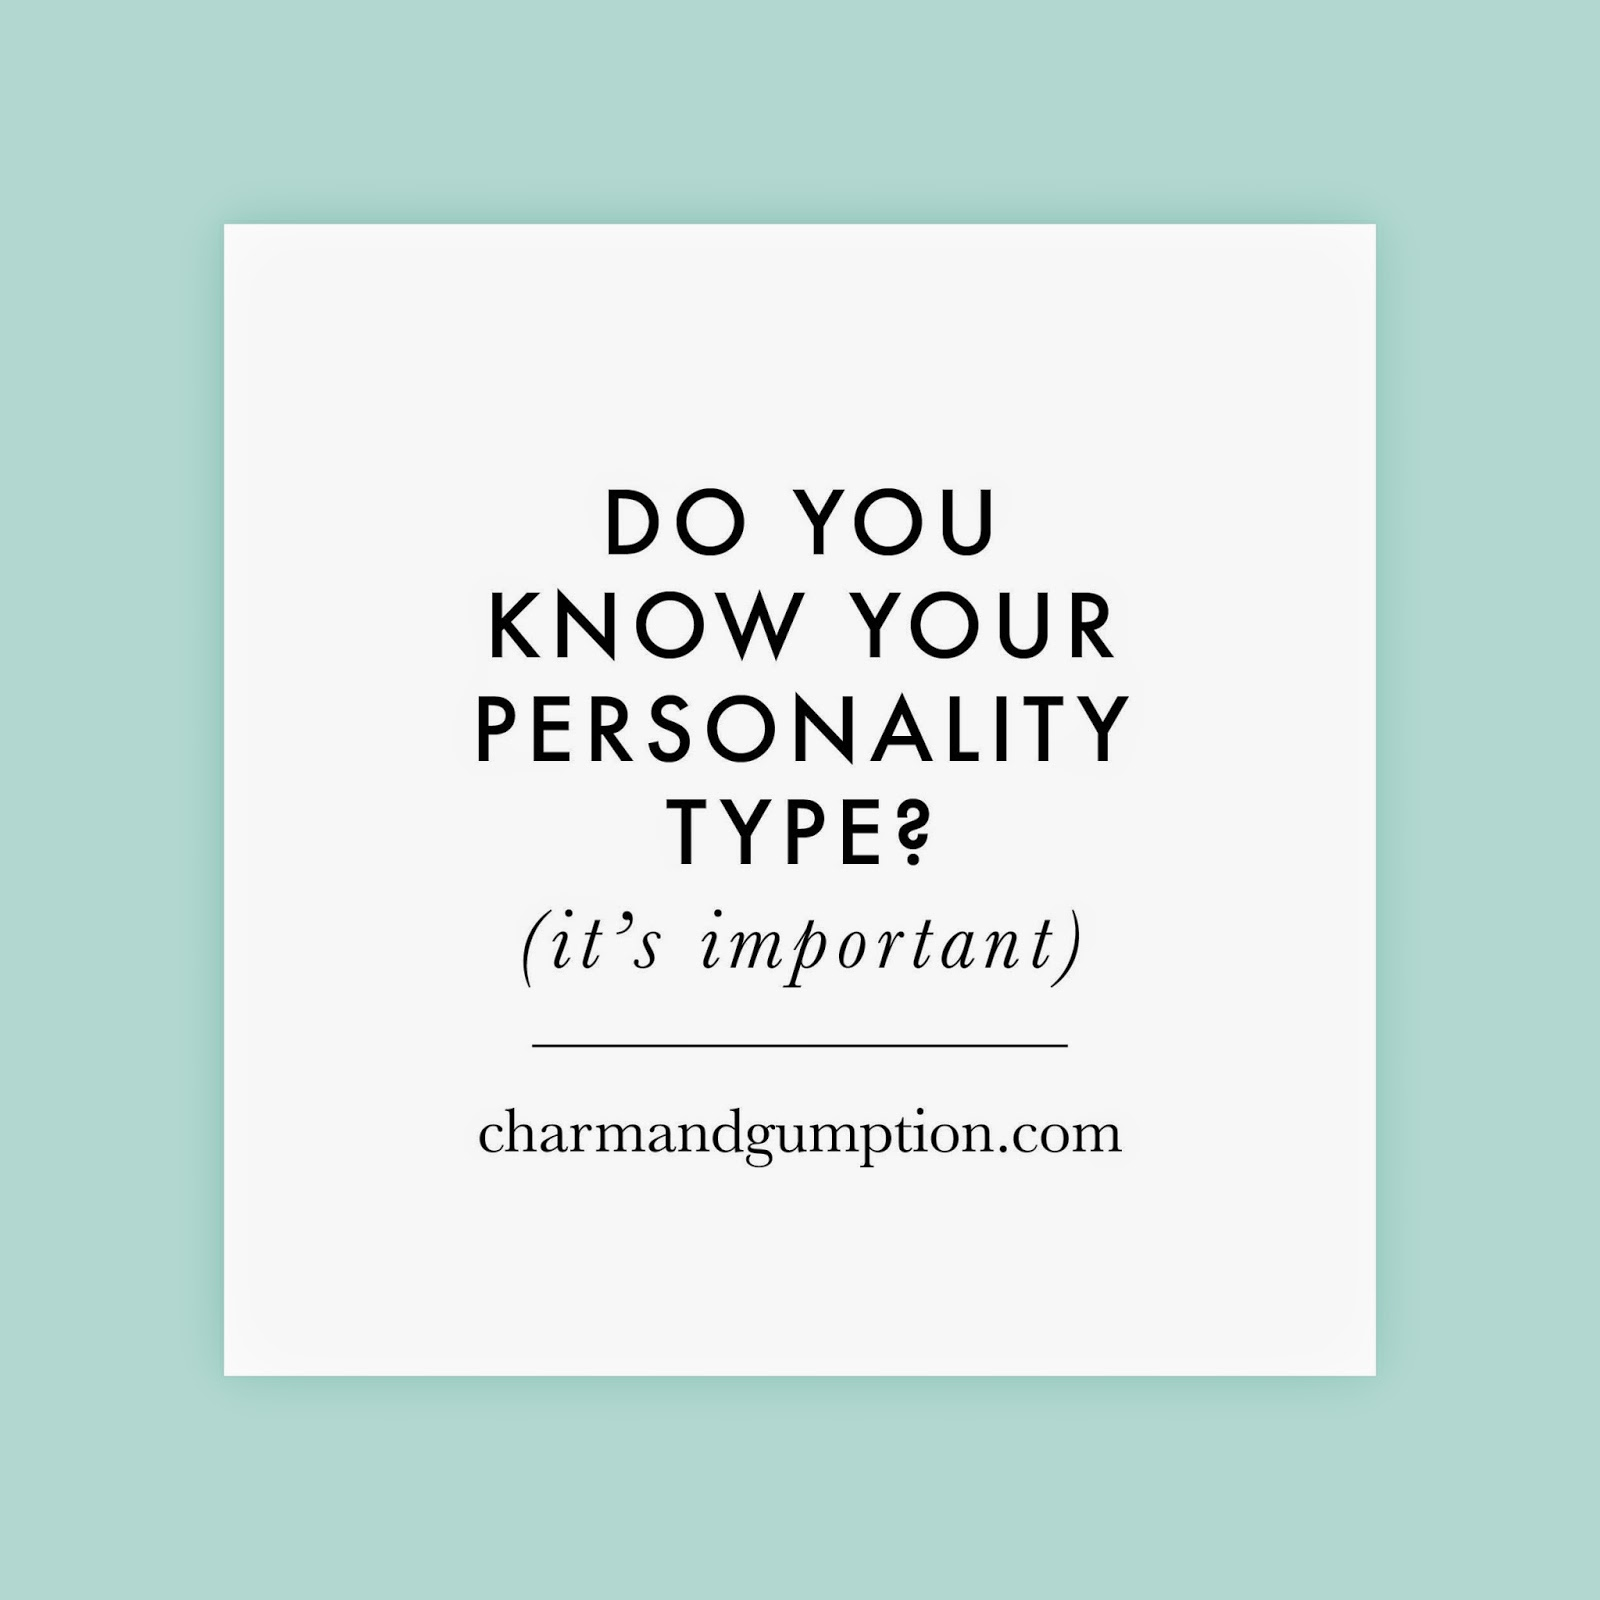 DO YOU KNOW YOUR PERSONALITY TYPE? | charmandgumption.com